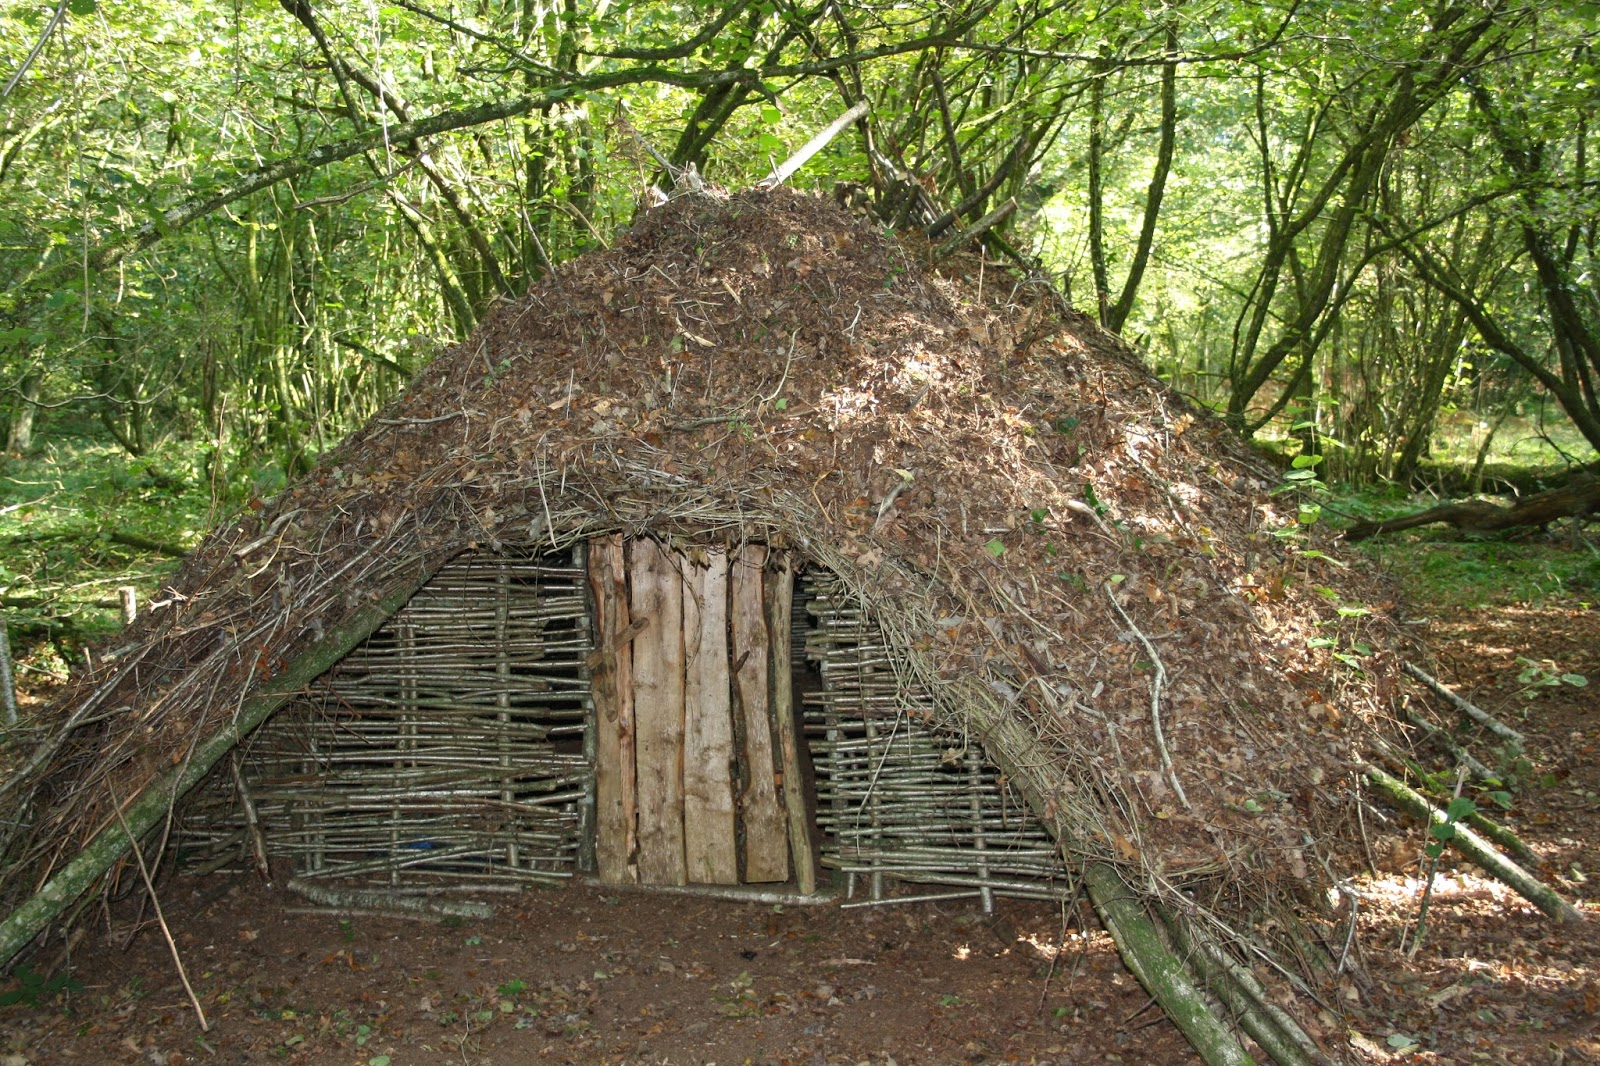 Long Term Survival Shelter : Wilderness survival skills and bushcraft antics building